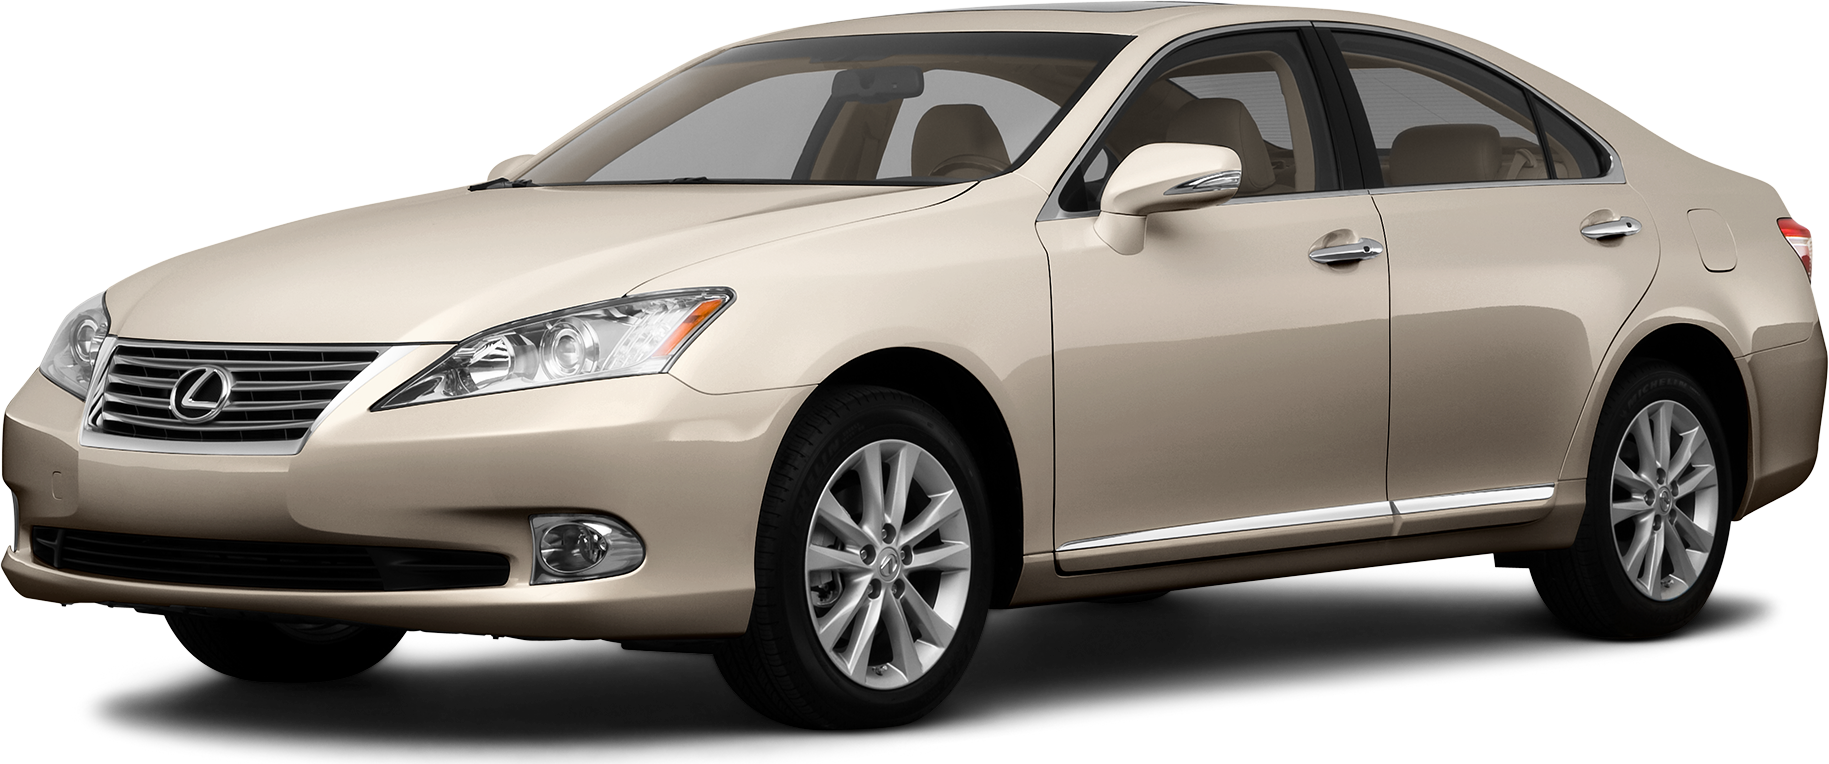 2011 Toyota Camry | Pricing, Ratings, Expert Review | Kelley